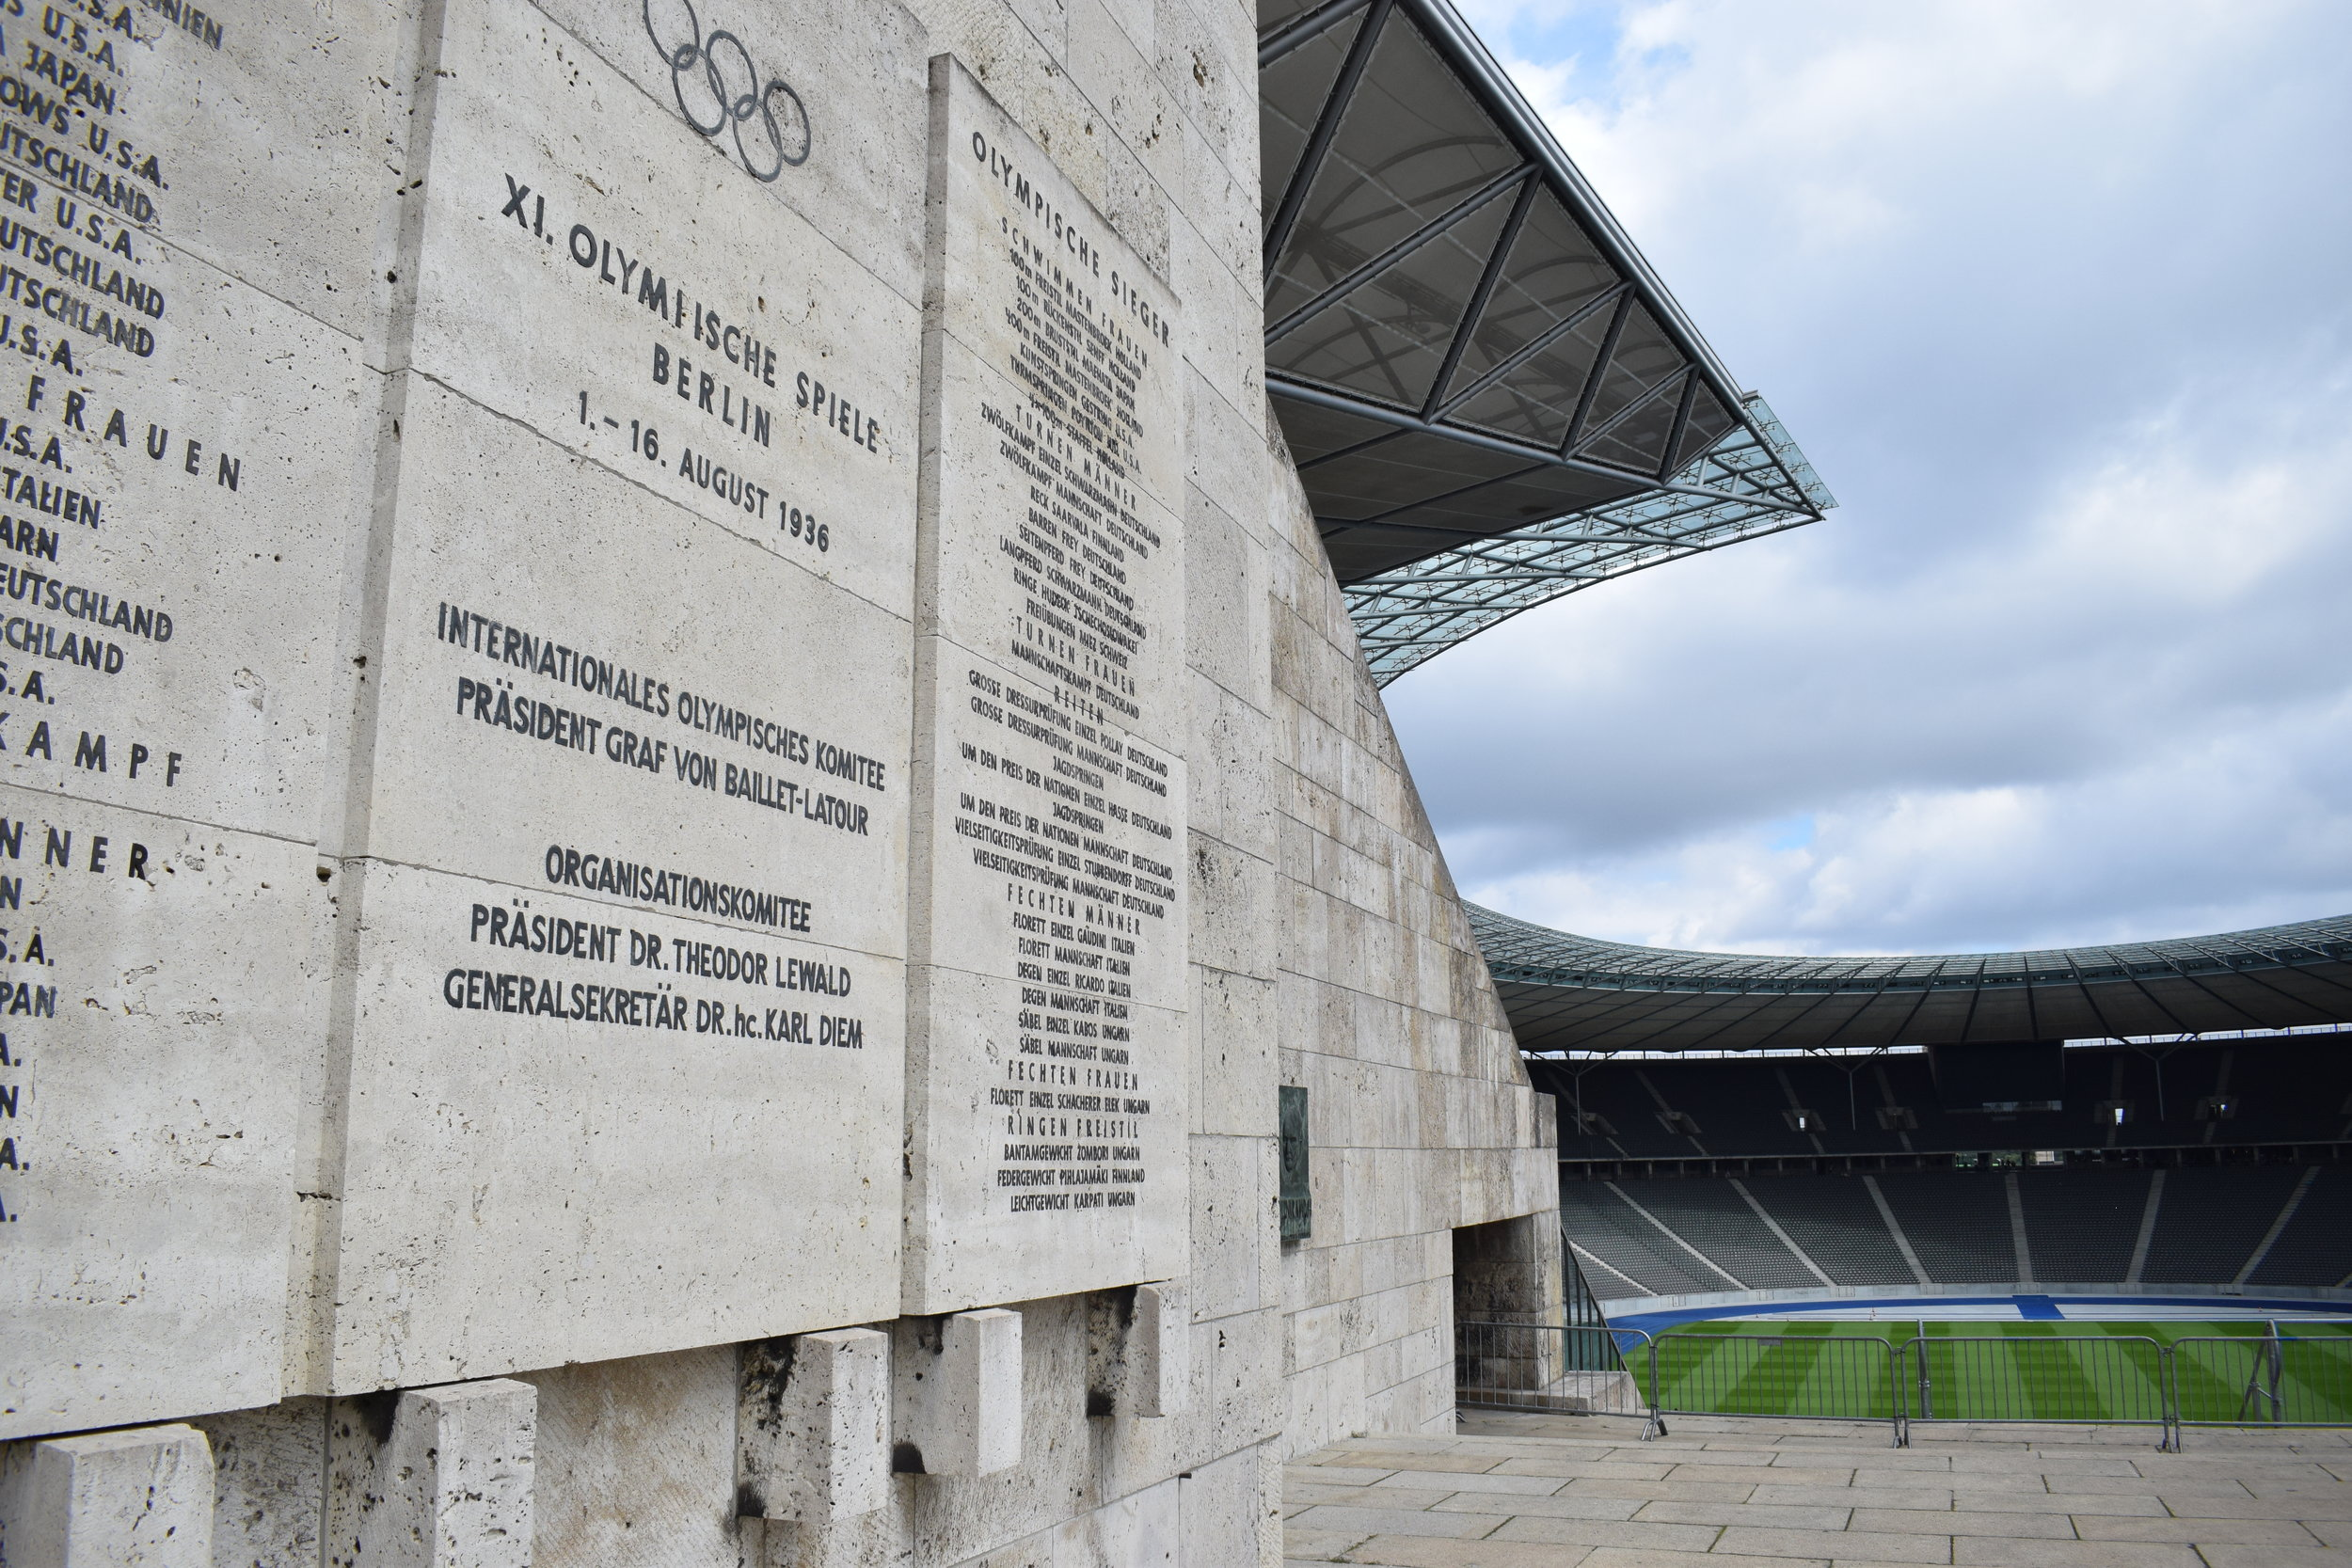 A plaque commemorates the 1936 games and gold medal winners.